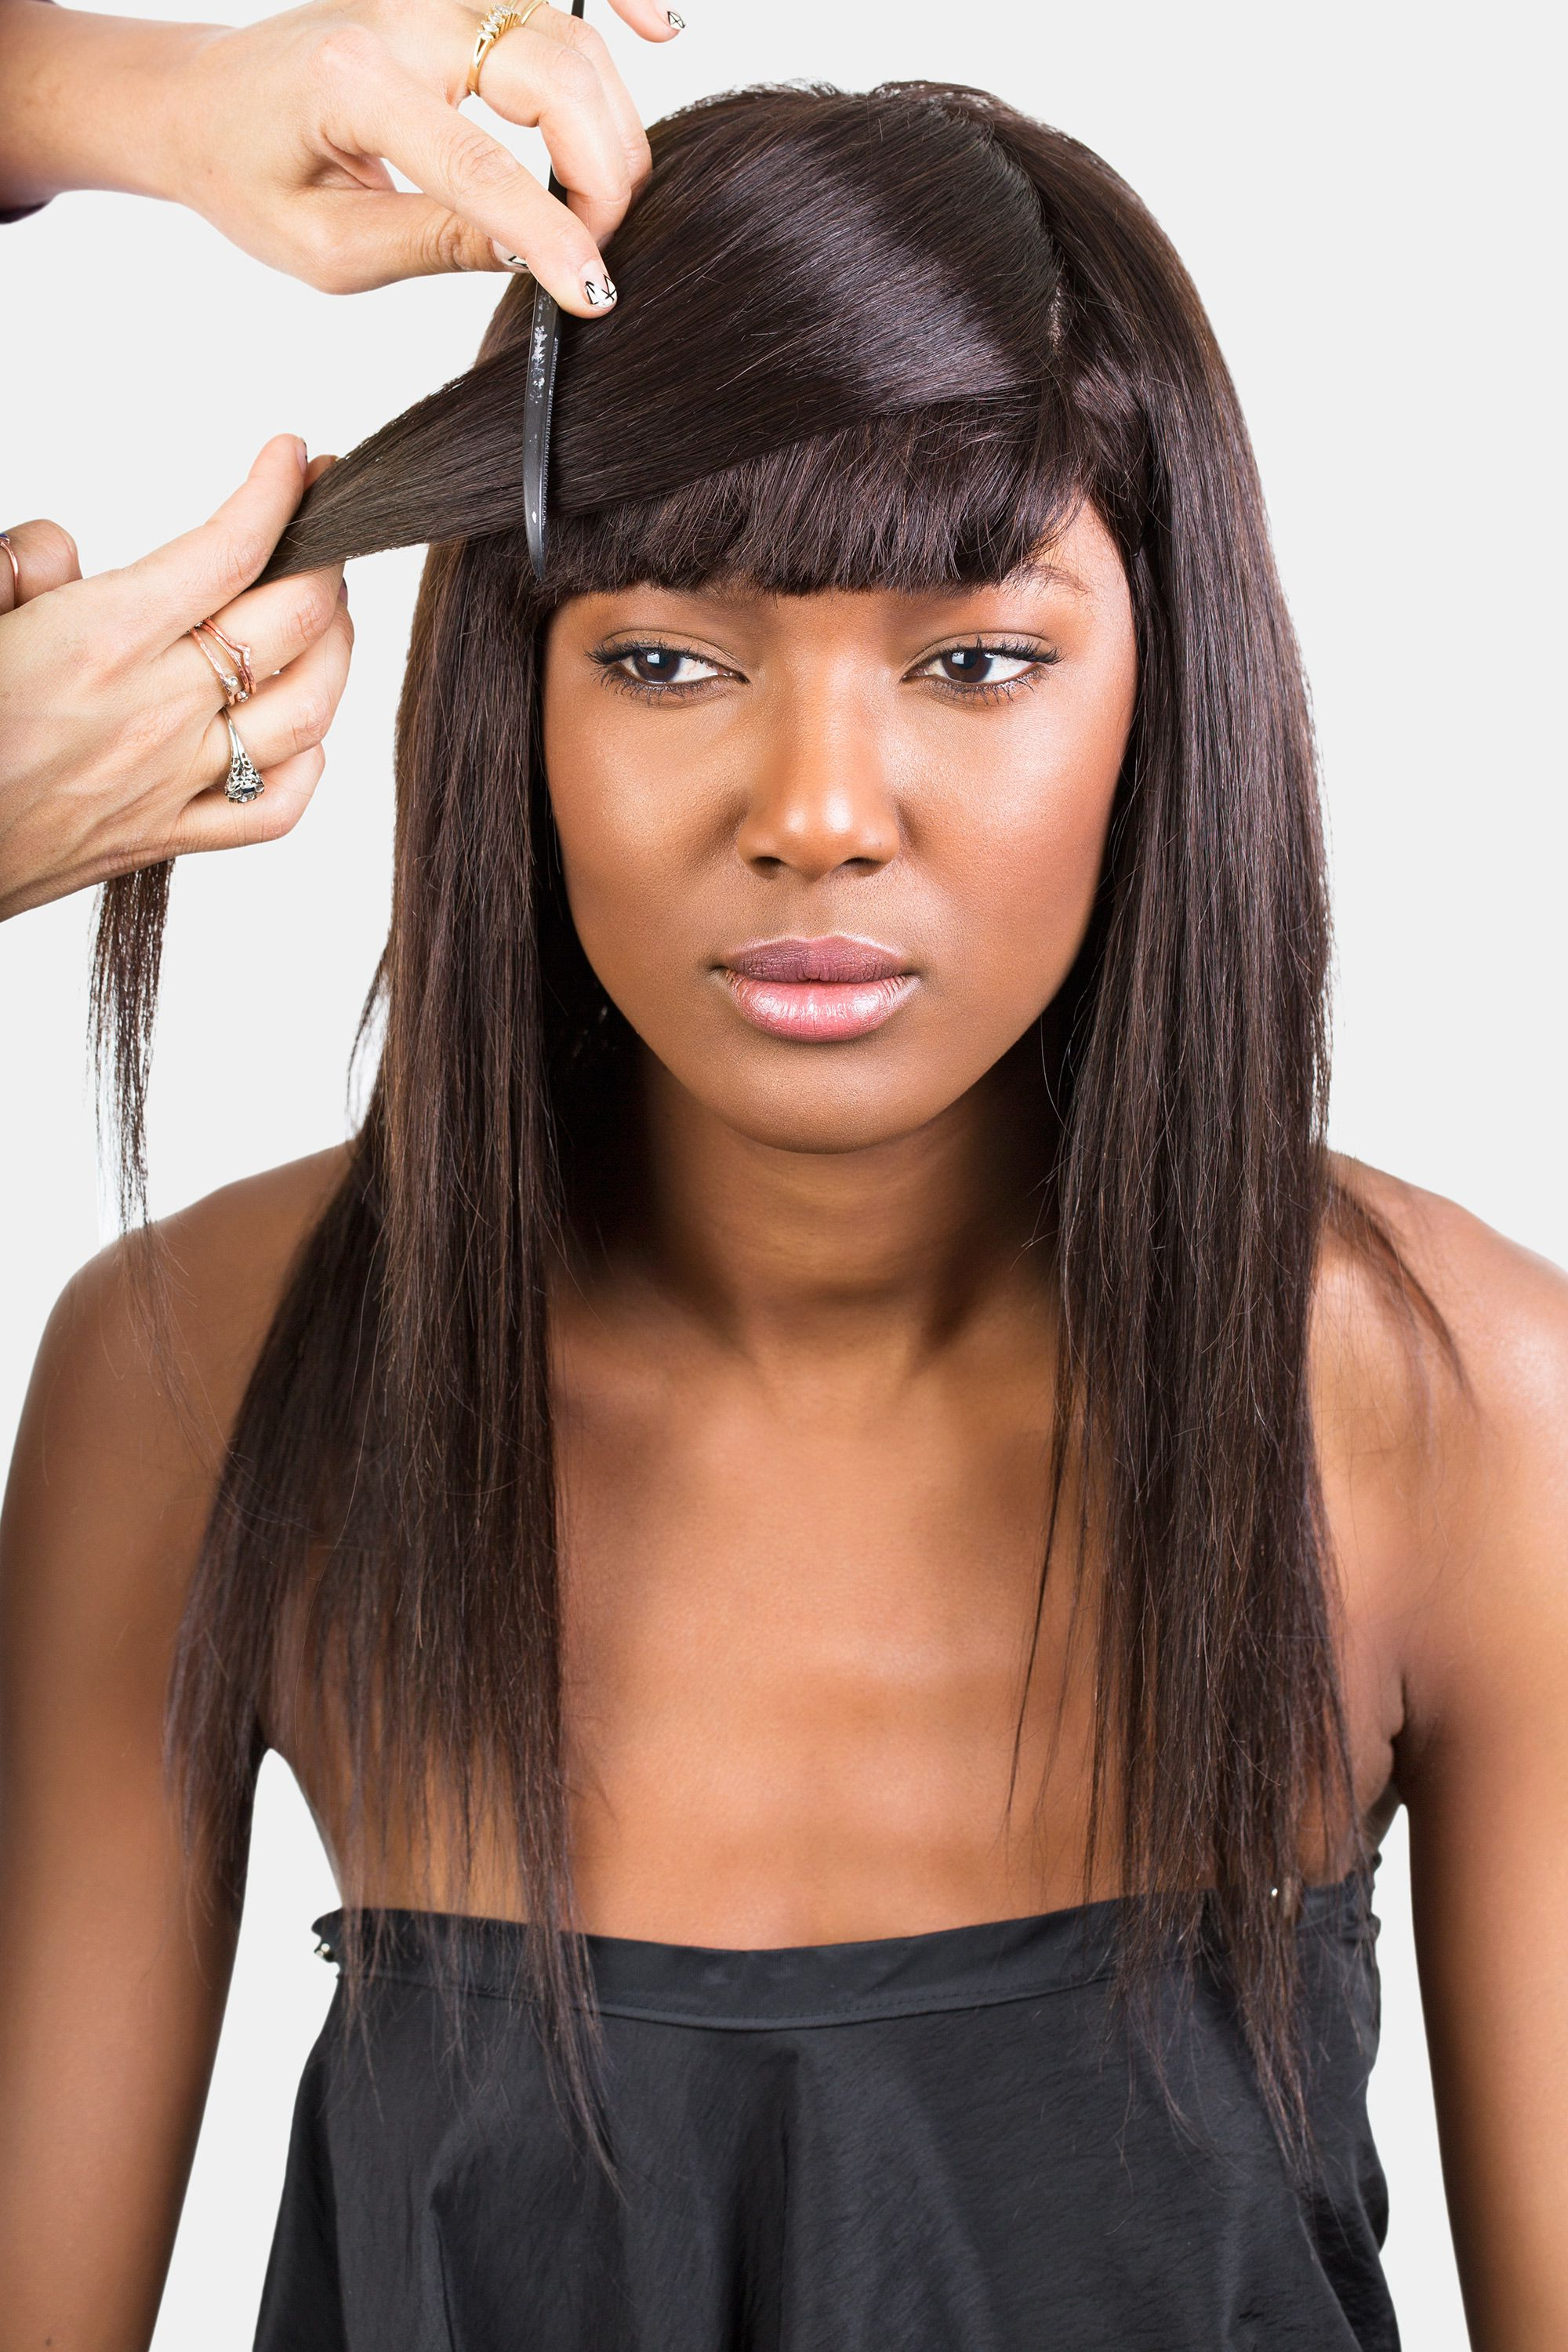 How To Style Bangs – 5 Hairstyles To Keep Your Bangs Out Of Your Face For Well Known Ponytail Hairstyles With A Strict Clasp (View 7 of 20)